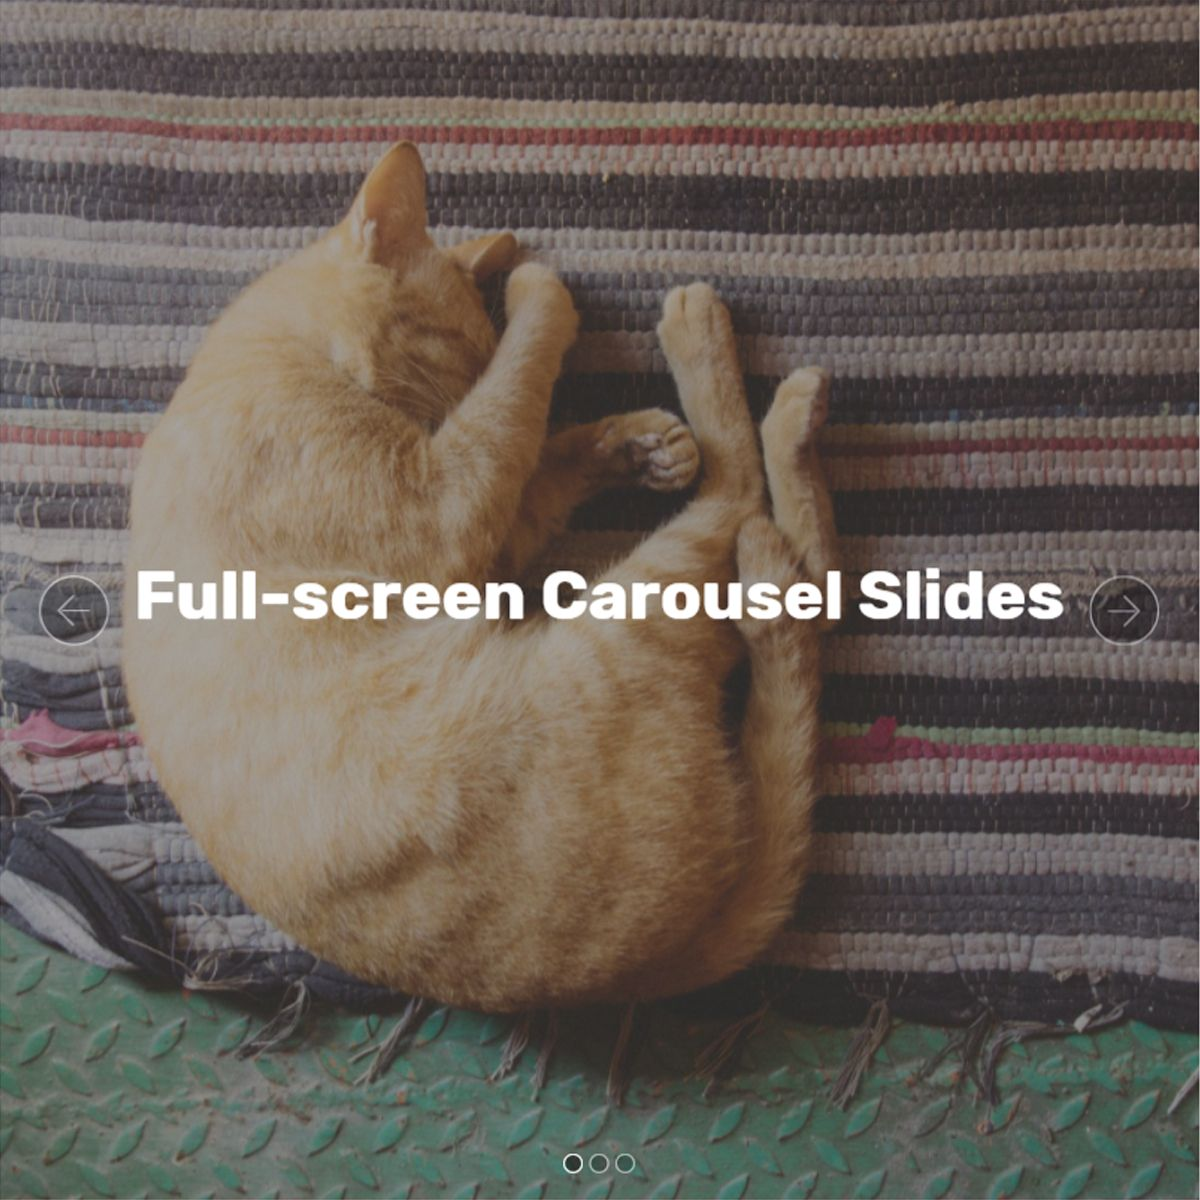 Bootstrap Full-screen Carousel Slides